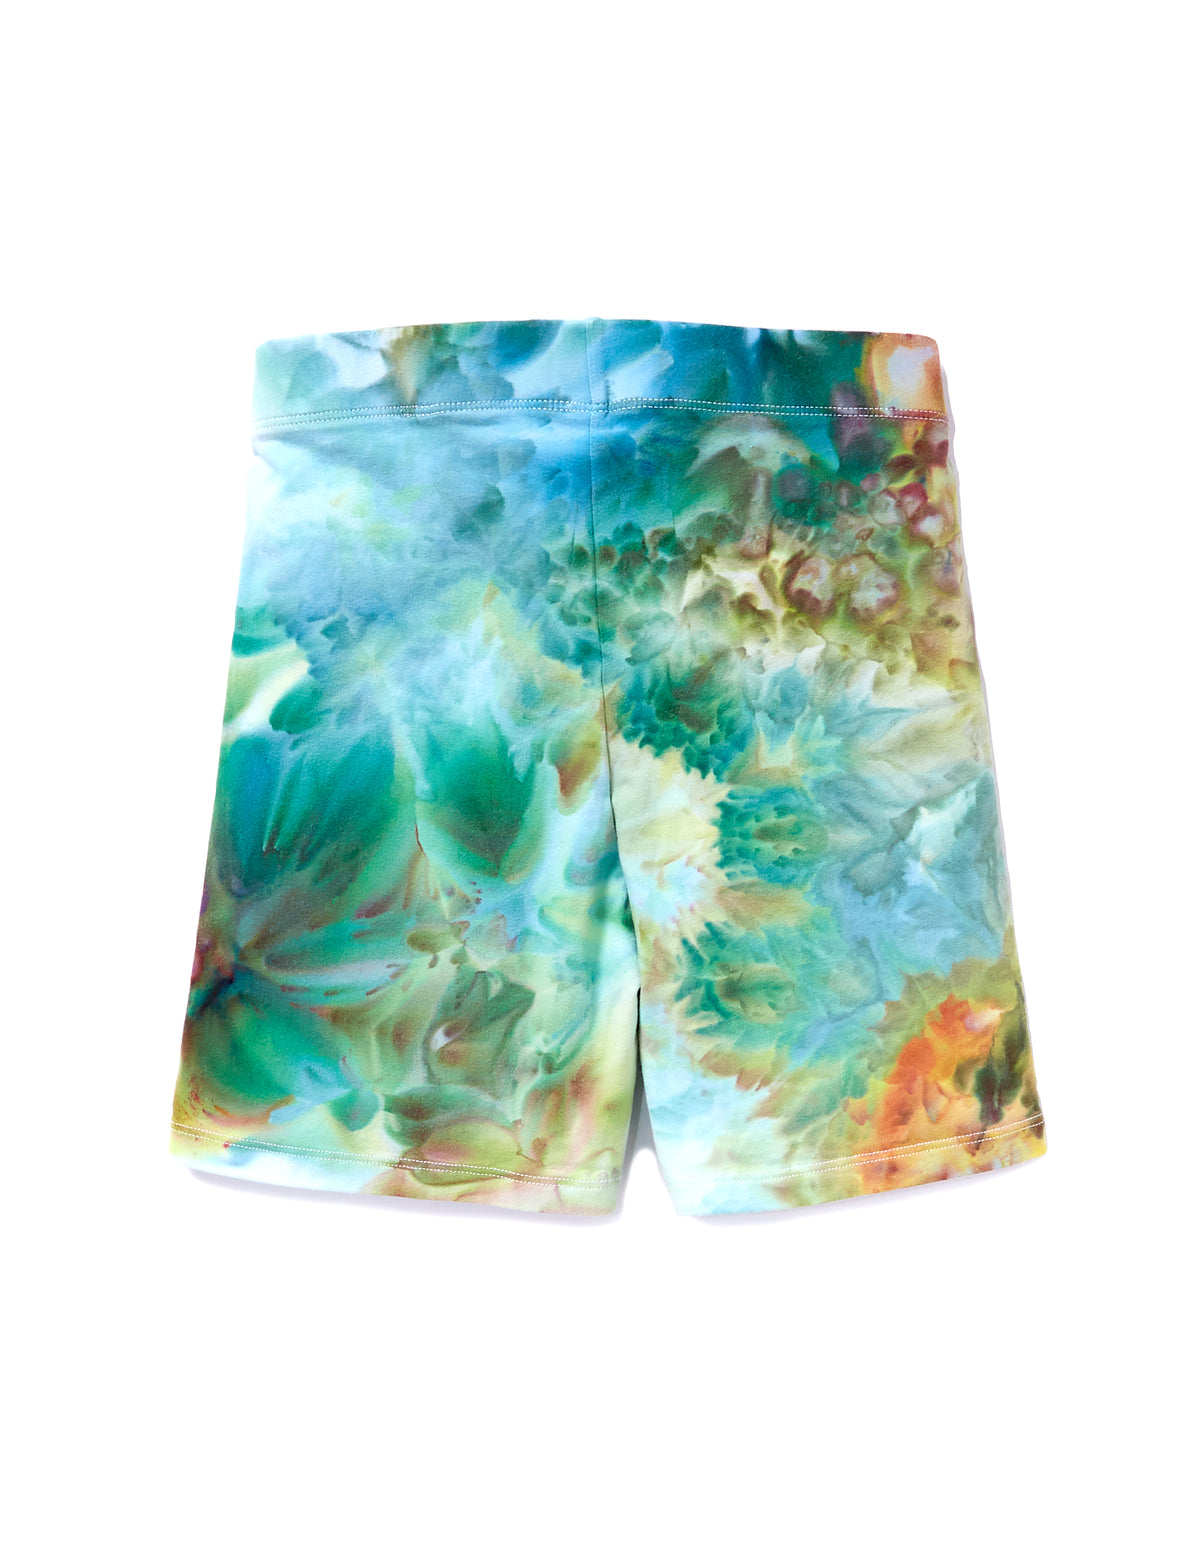 Bike Shorts in Marine - riverside tool & dye